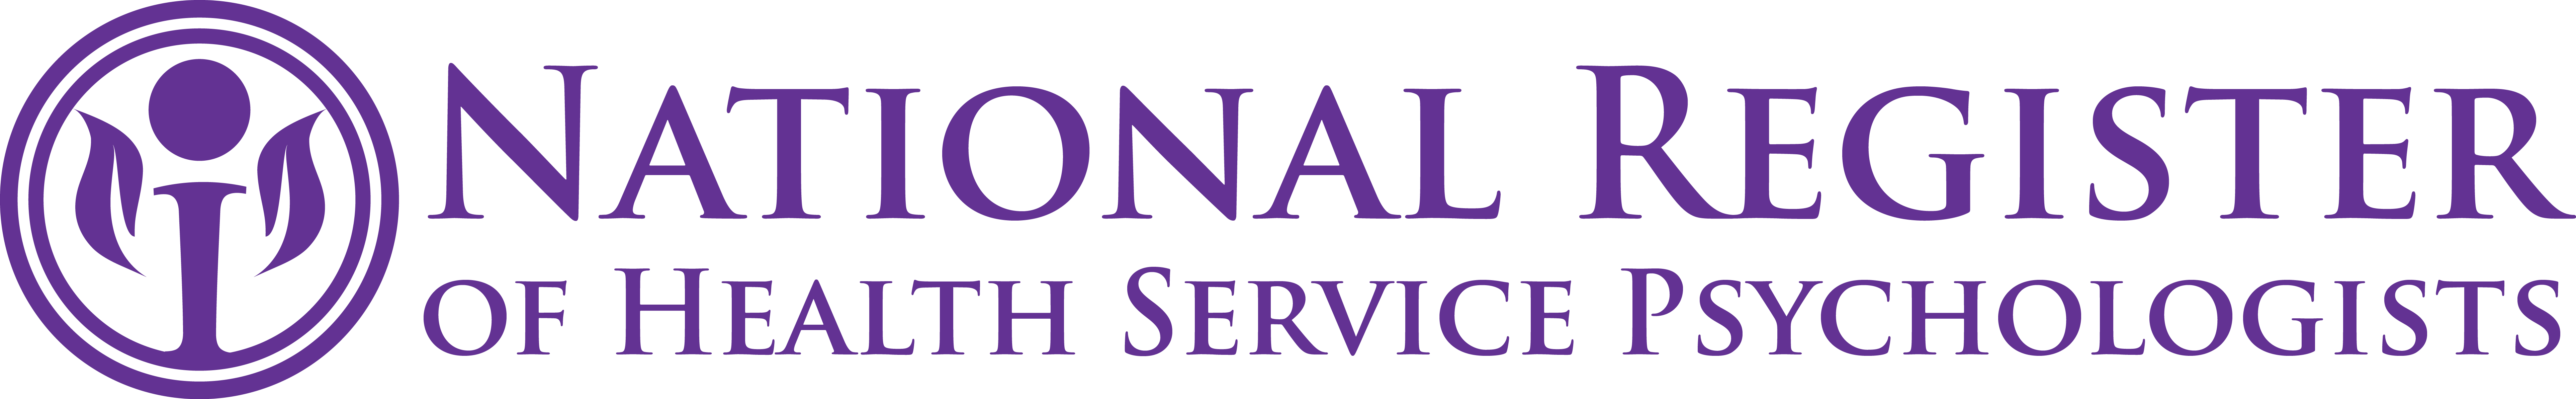 National Register Logo